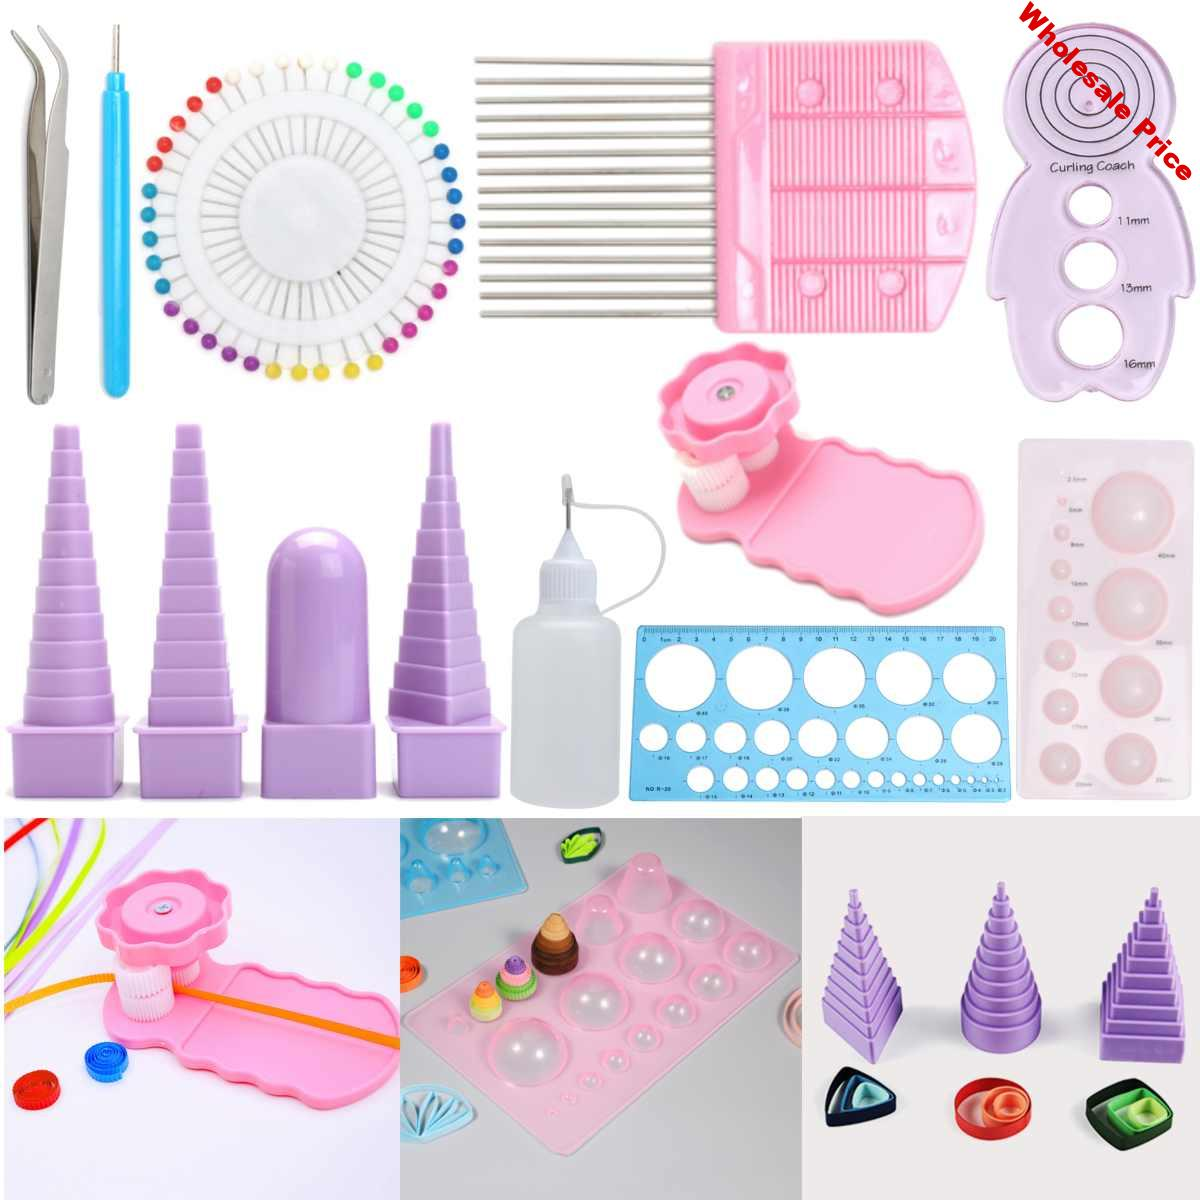 11Pcs Handmade Paper Template DIY Paper Quilling Tools Set Template Mould Board Tweezer Pins Slotted Tool Kit Card Paper Crafs